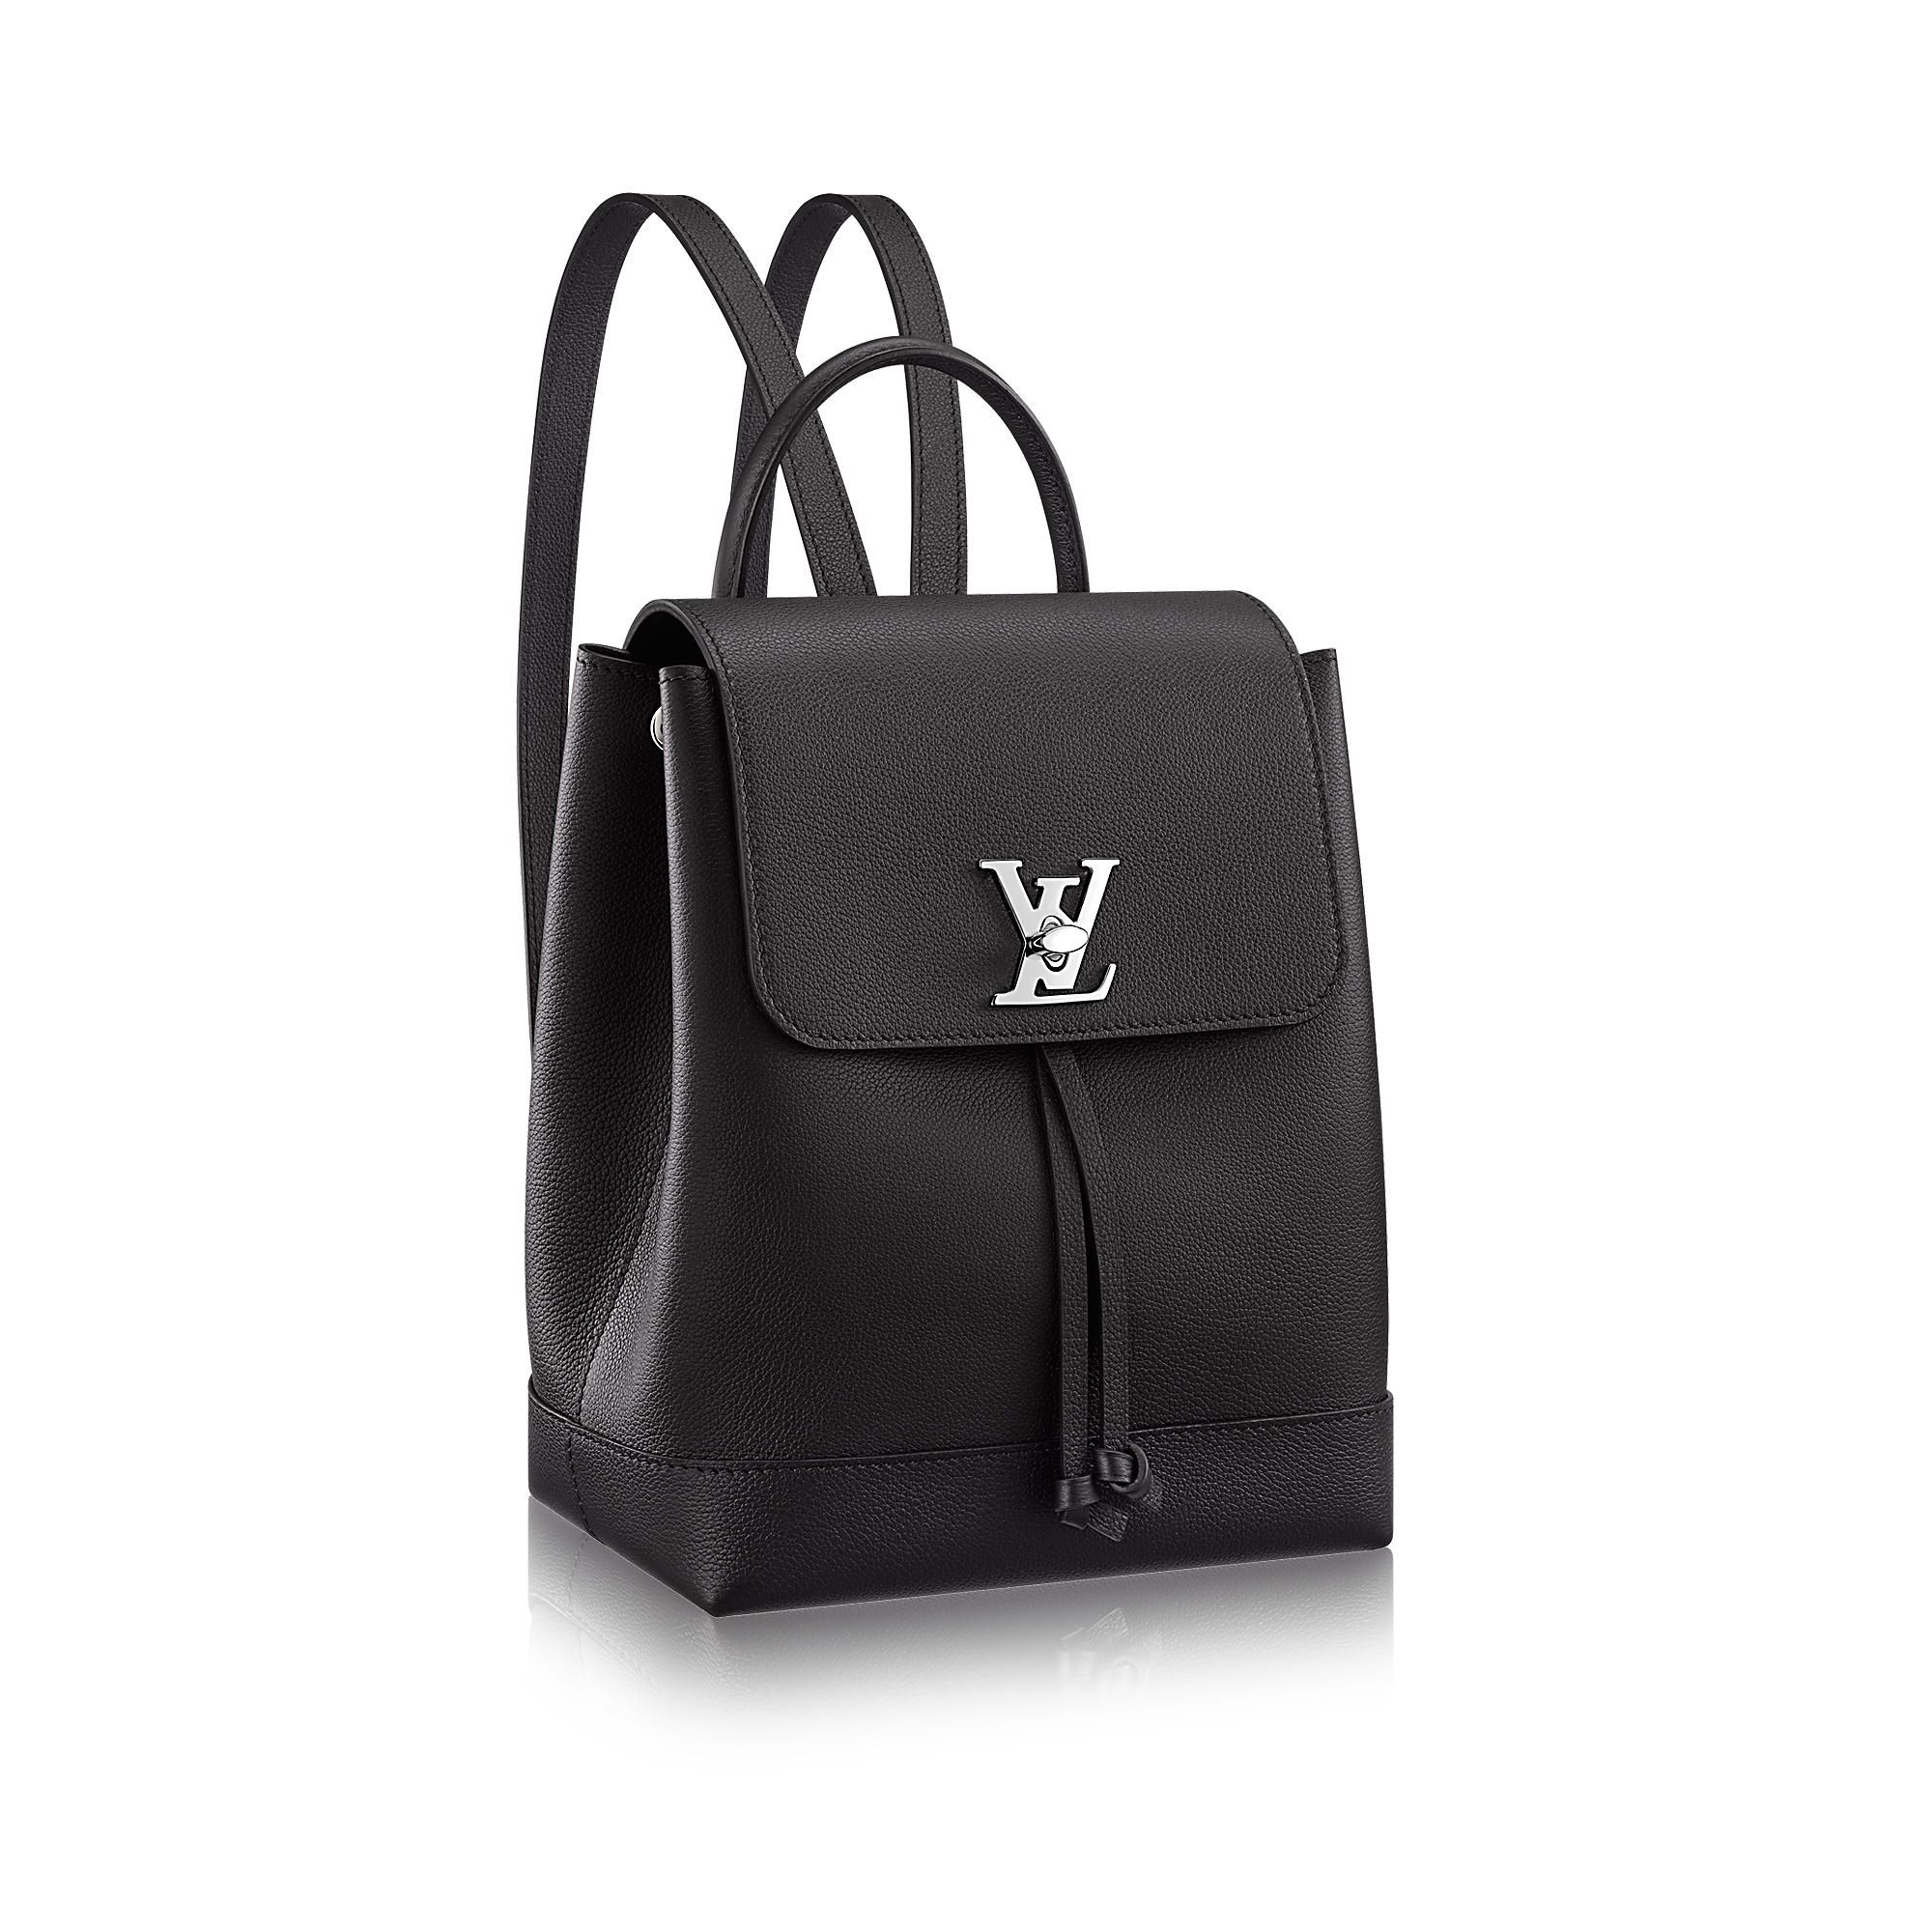 8094cebbac92 For lady who are hunting for an exquisitely sharp and streamlined backpack